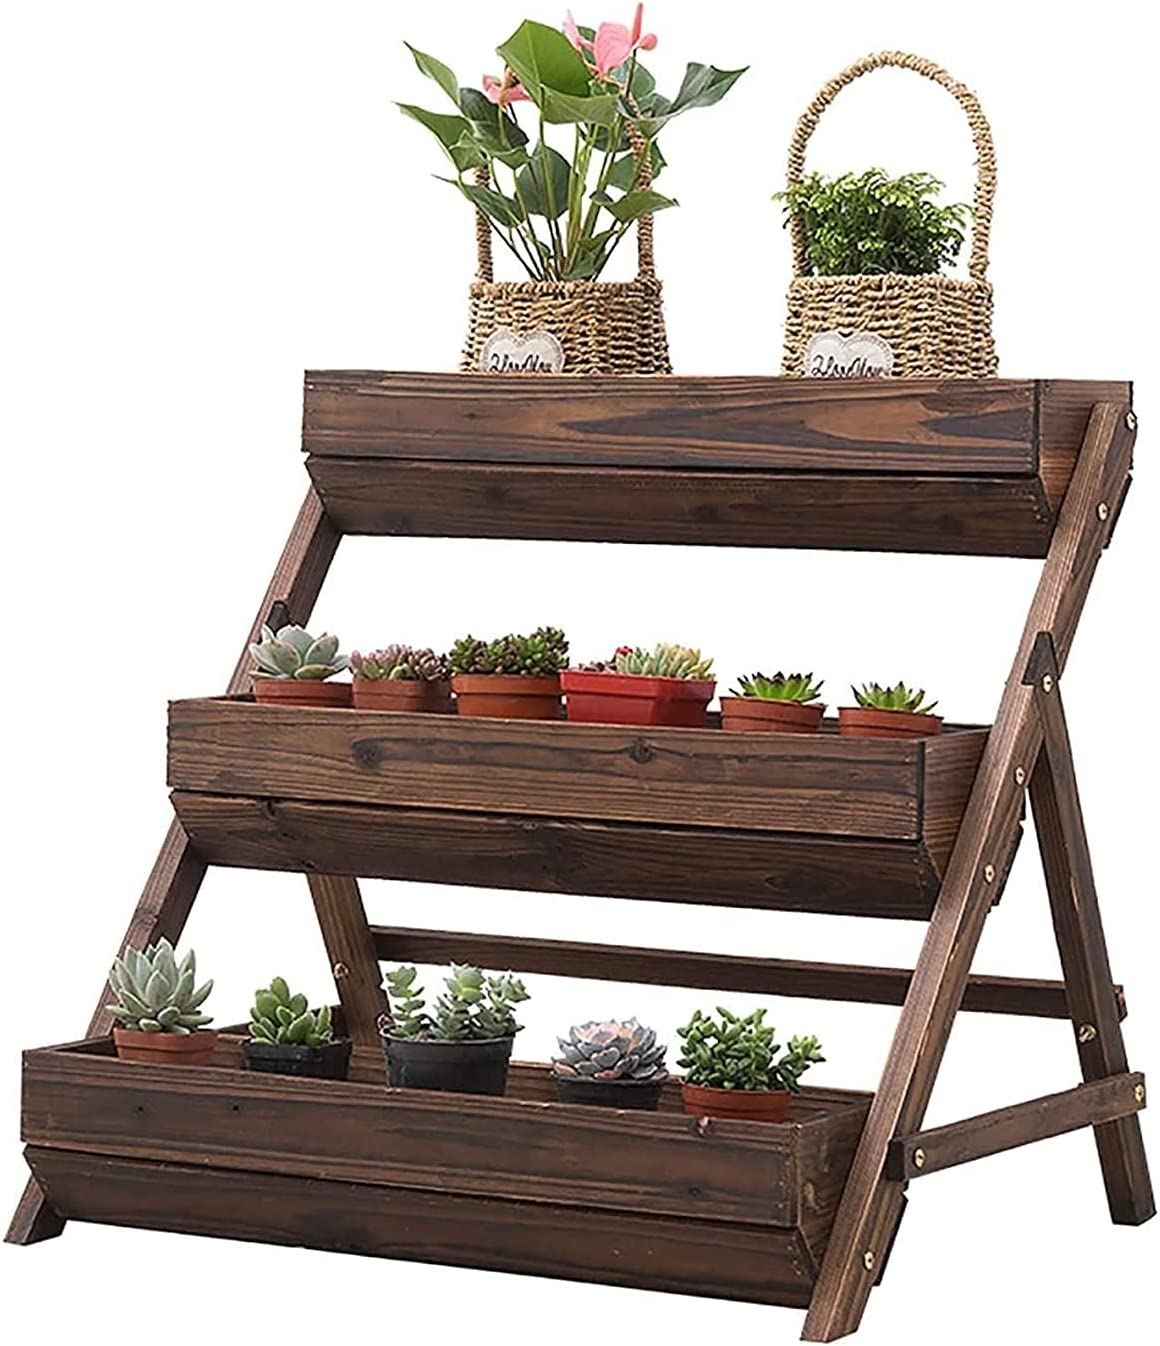 Green Flower Window Box Plastic Vegetable Planters Freestanding Planter 3 Container Boxes Raised Garden Bed Elevated Bed-Vertical for Indoor Outdoor Terrace Balcony for Windowsill, Patio, Garden, Home